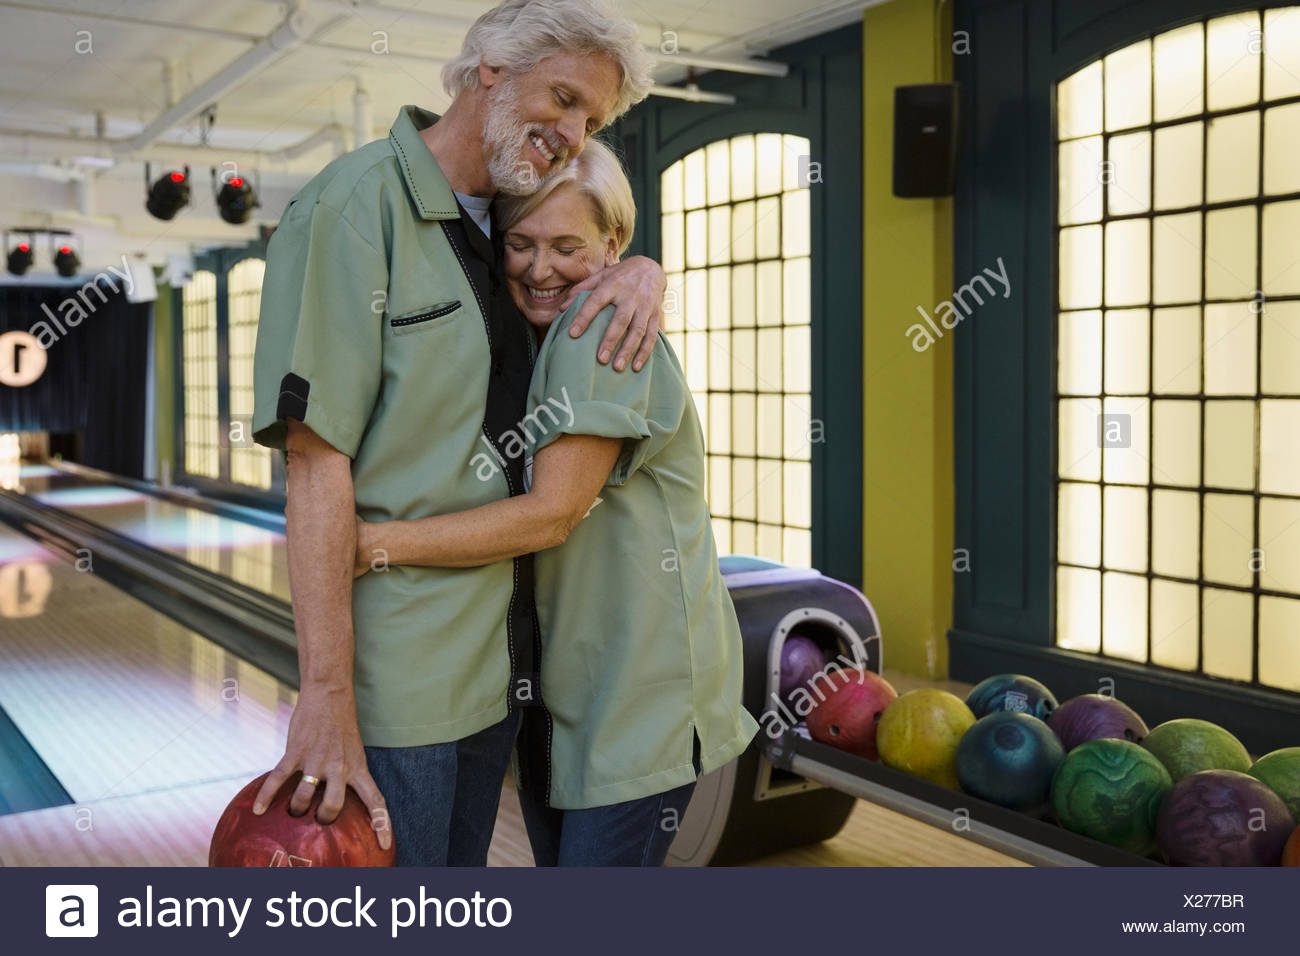 Couple in bowling shirts hugging at bowling alley - Stock Image